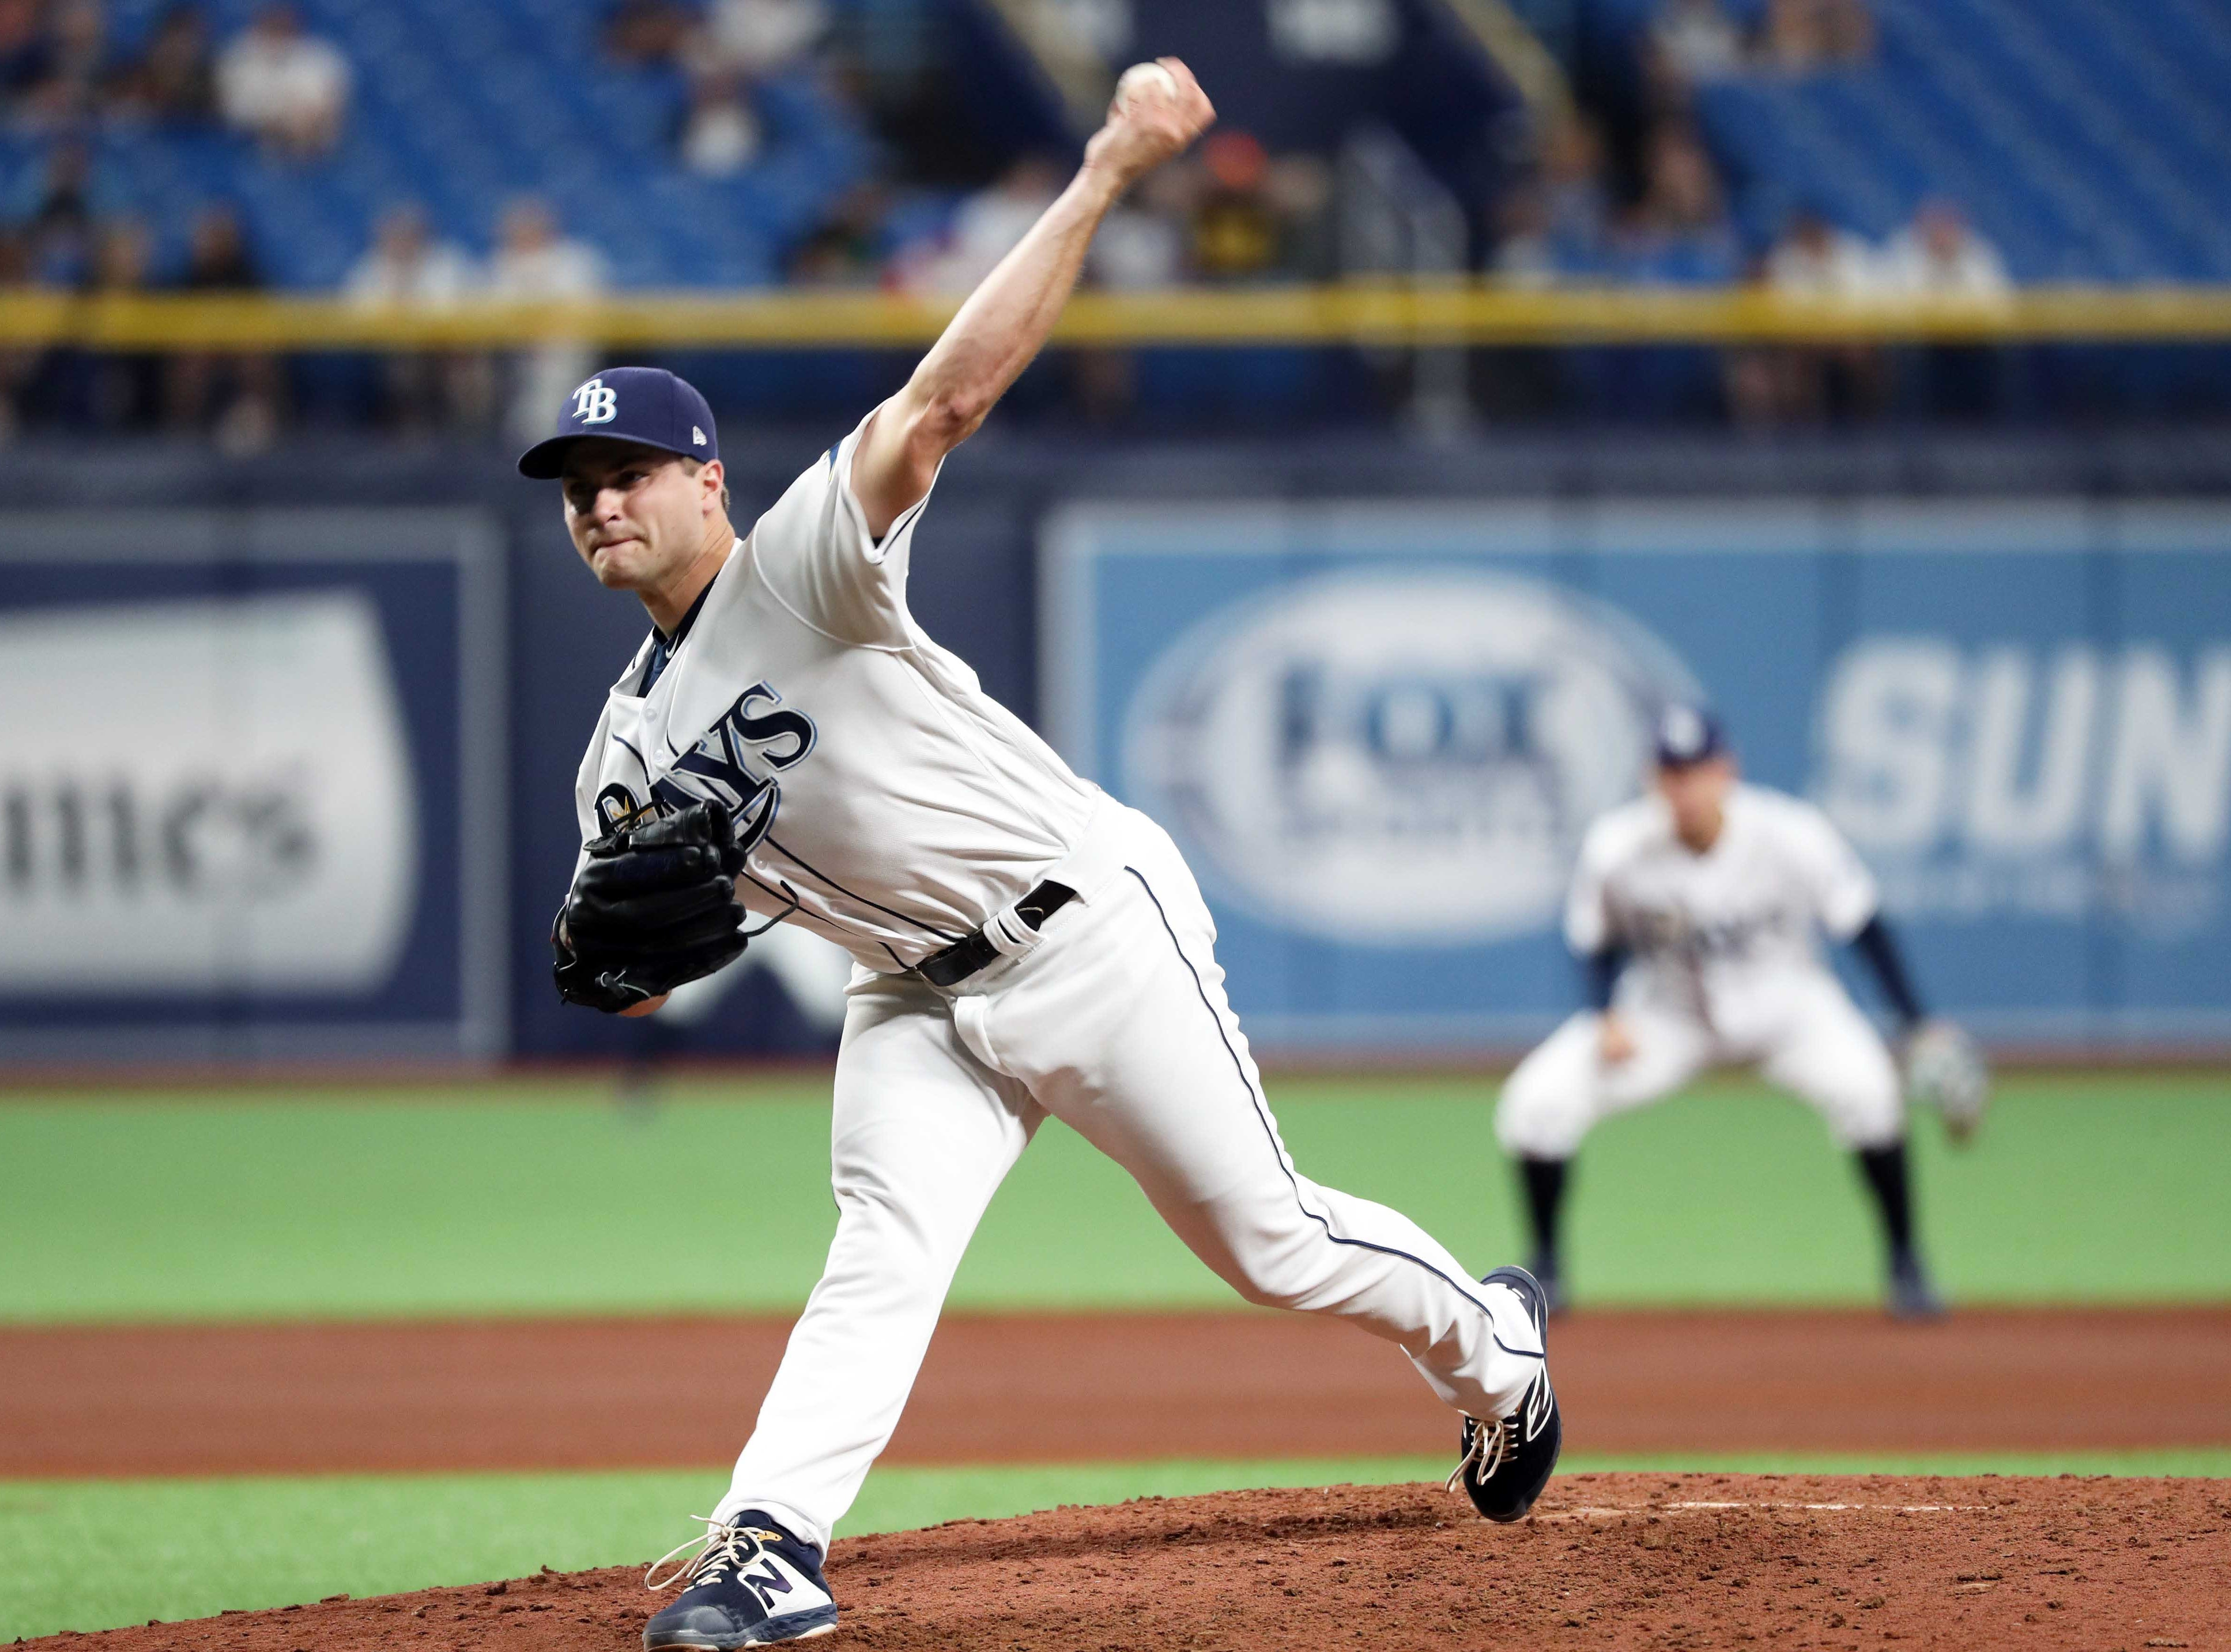 May 7, 2019; St. Petersburg, FL, USA; Tampa Bay Rays relief pitcher Jalen Beeks (68) throws a pitch during the fifth inning against the Arizona Diamondbacks at Tropicana Field. Mandatory Credit: Kim Klement-USA TODAY Sports